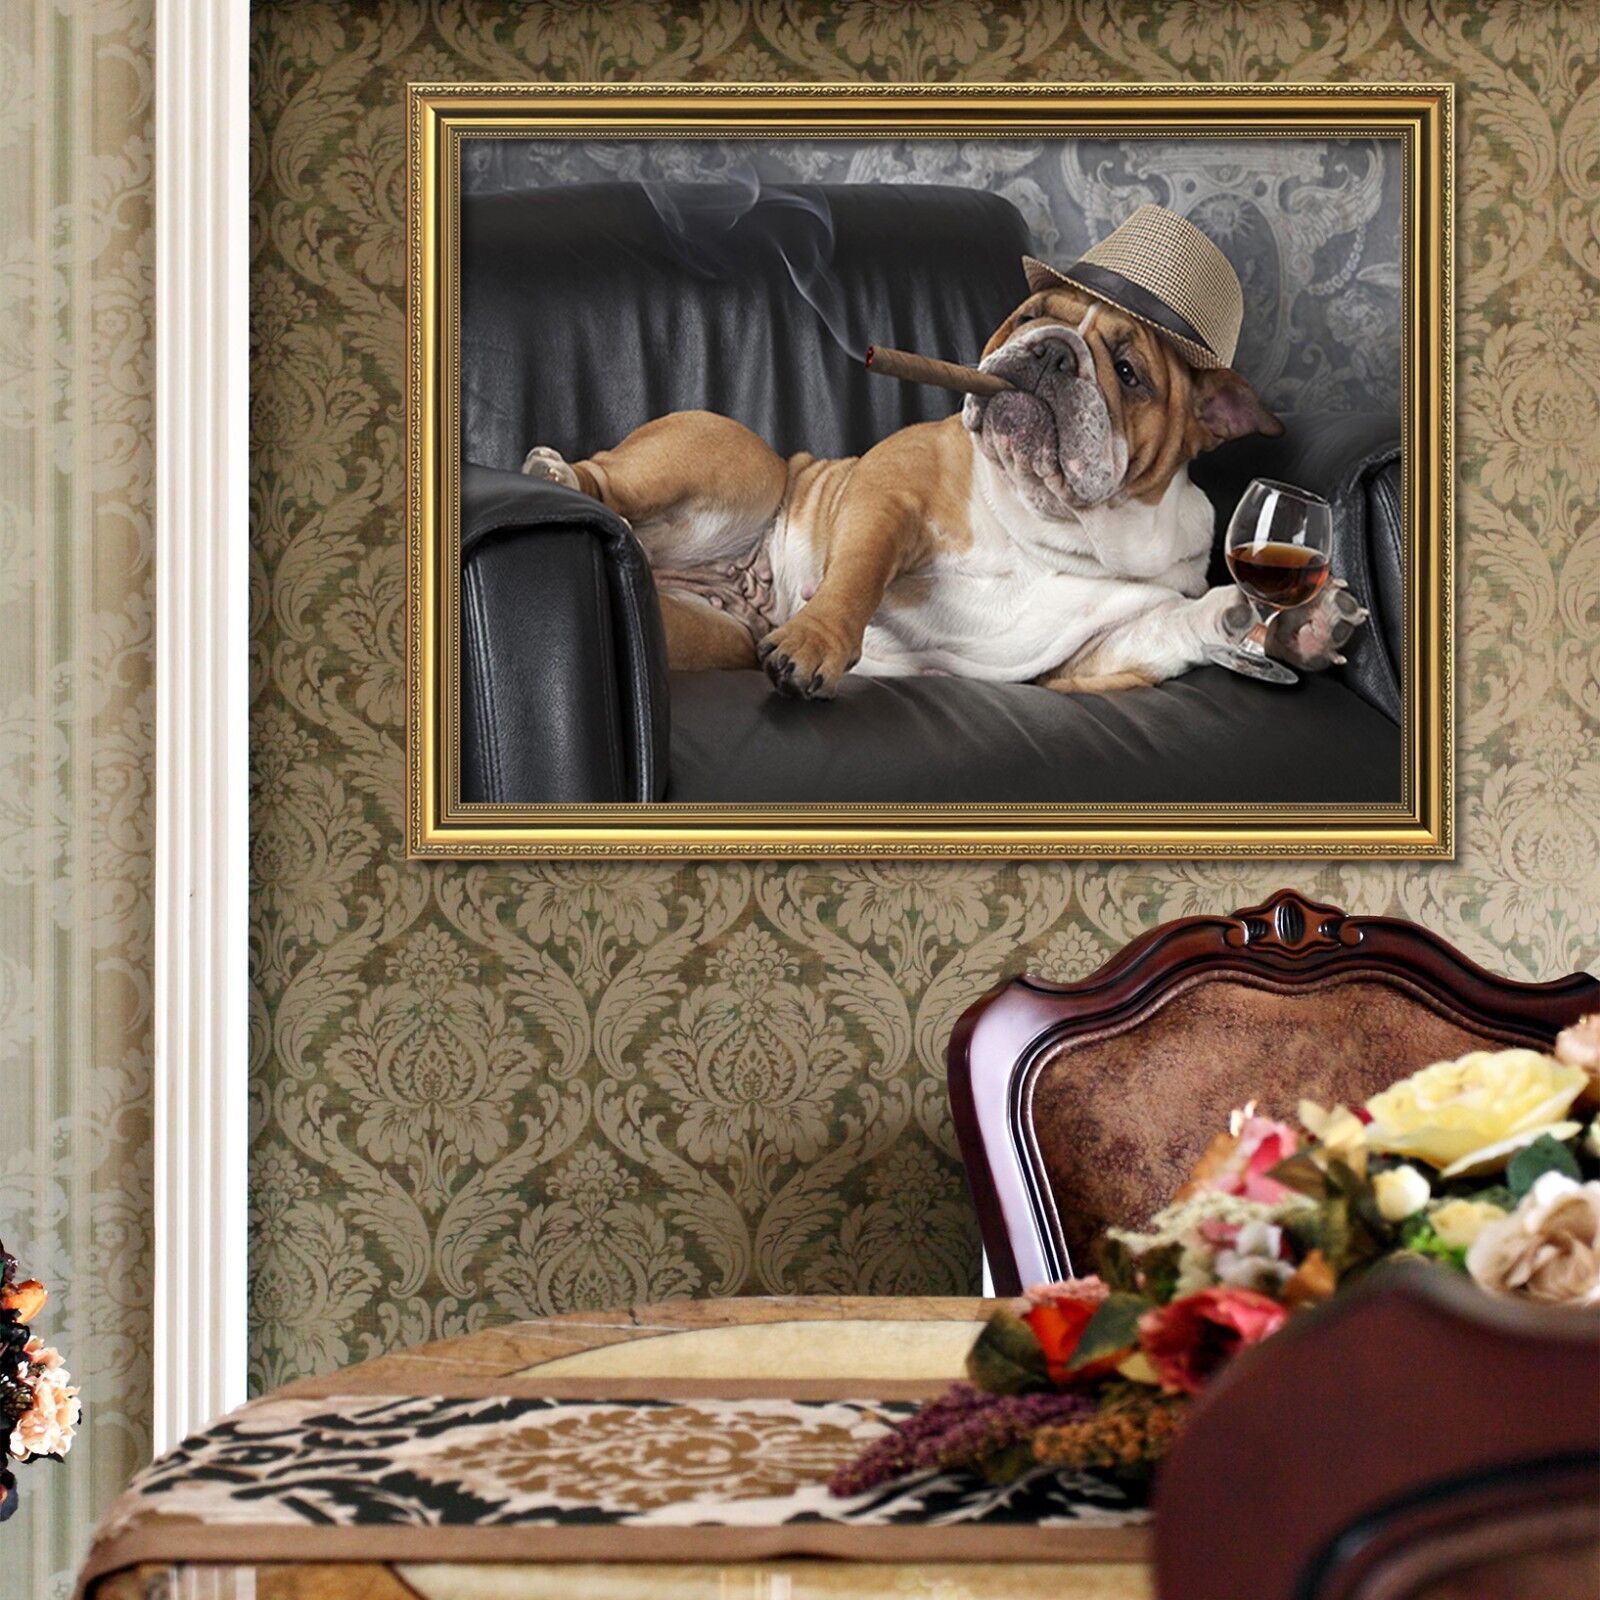 3D Wine Smoke Hat Dog 1 Framed Poster Home Decor Print Painting Art AJ WALLPAPER